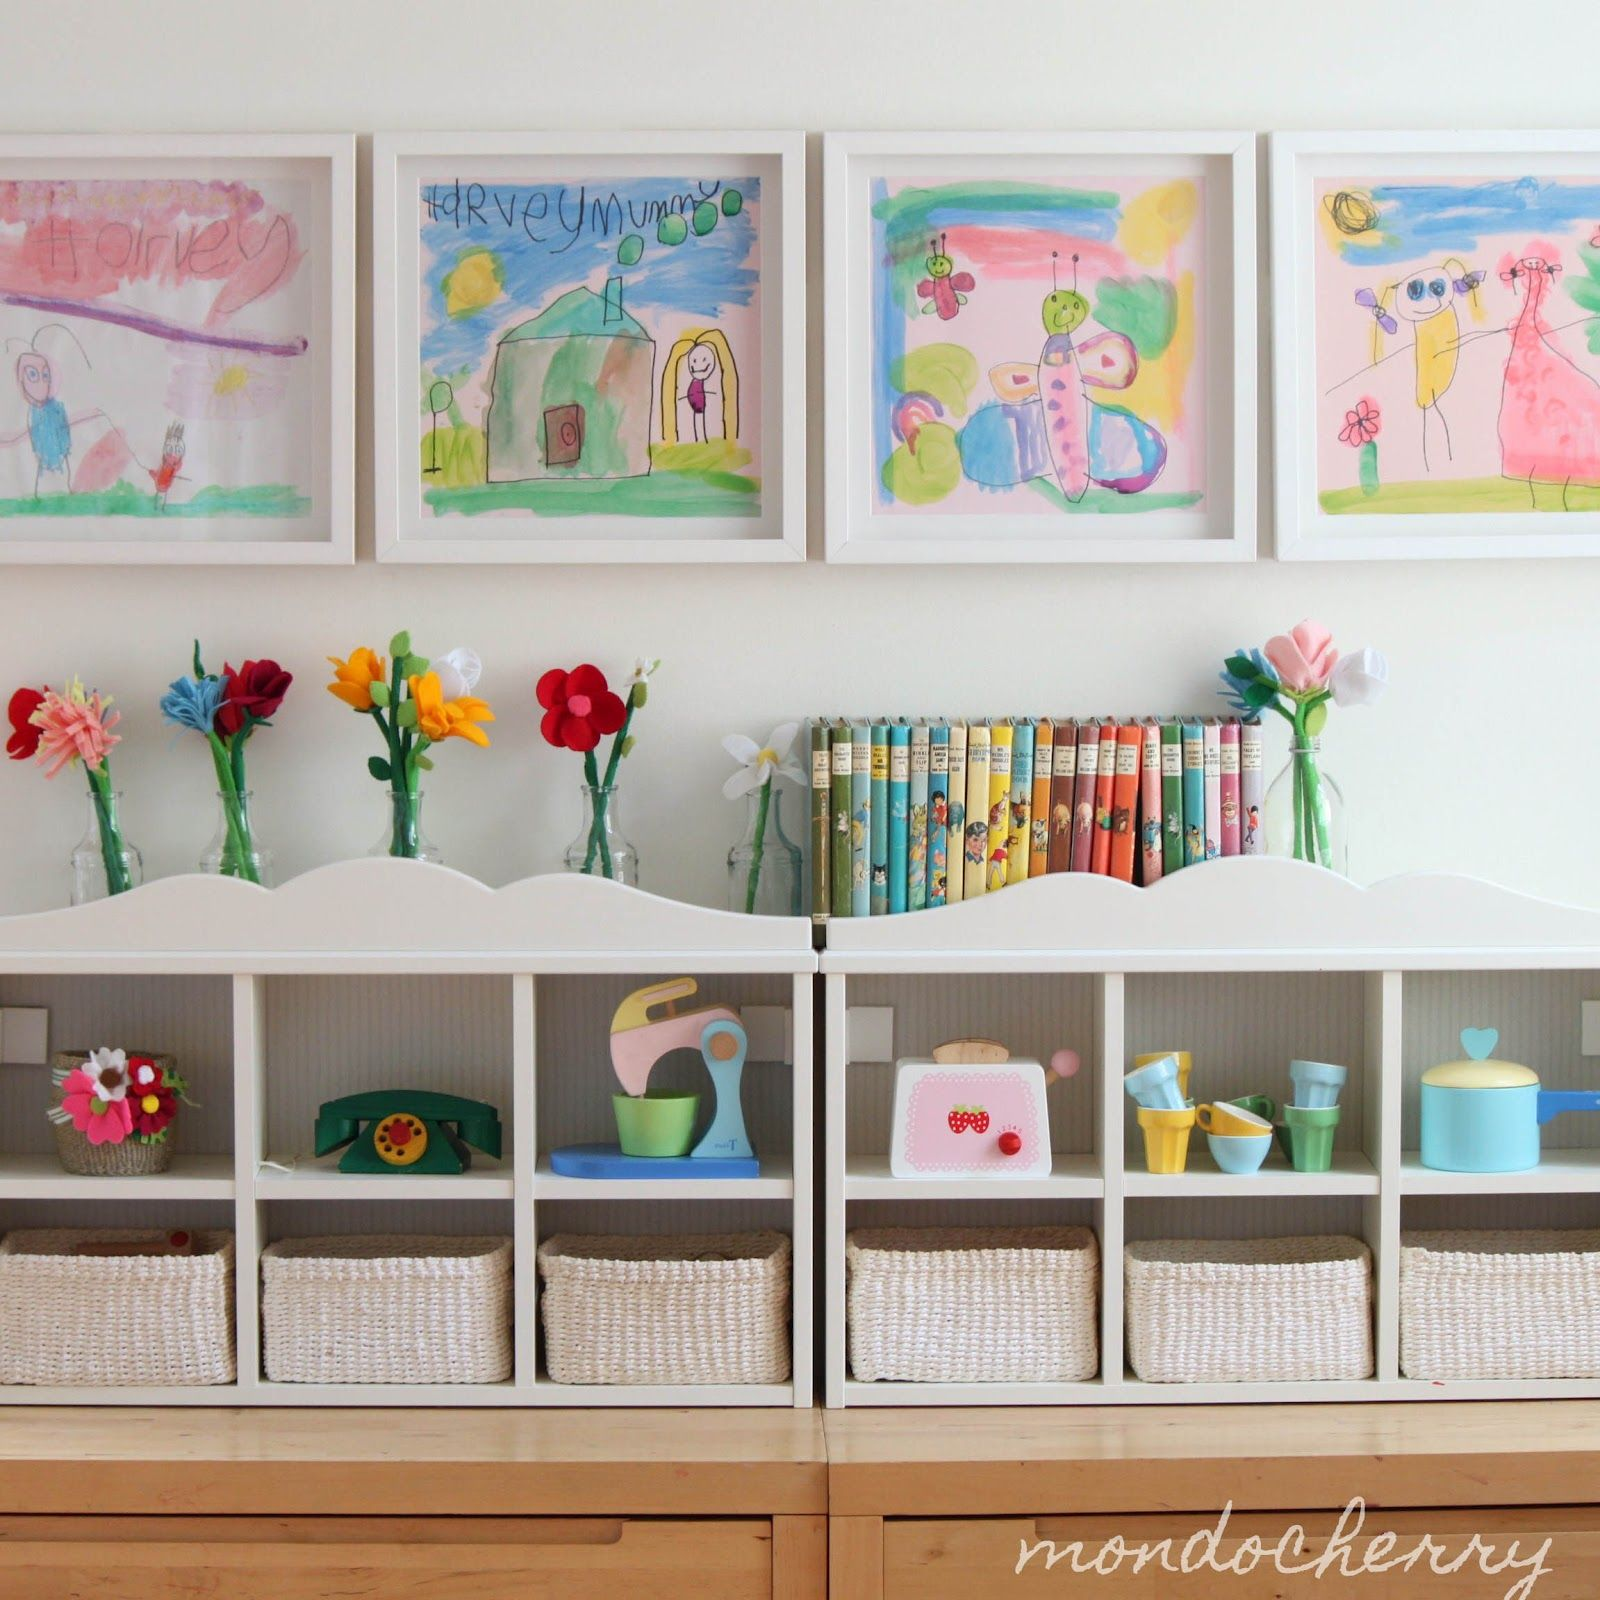 Storage For Kids Room Children's Art Work As Home Décor  Playrooms Storage And Room